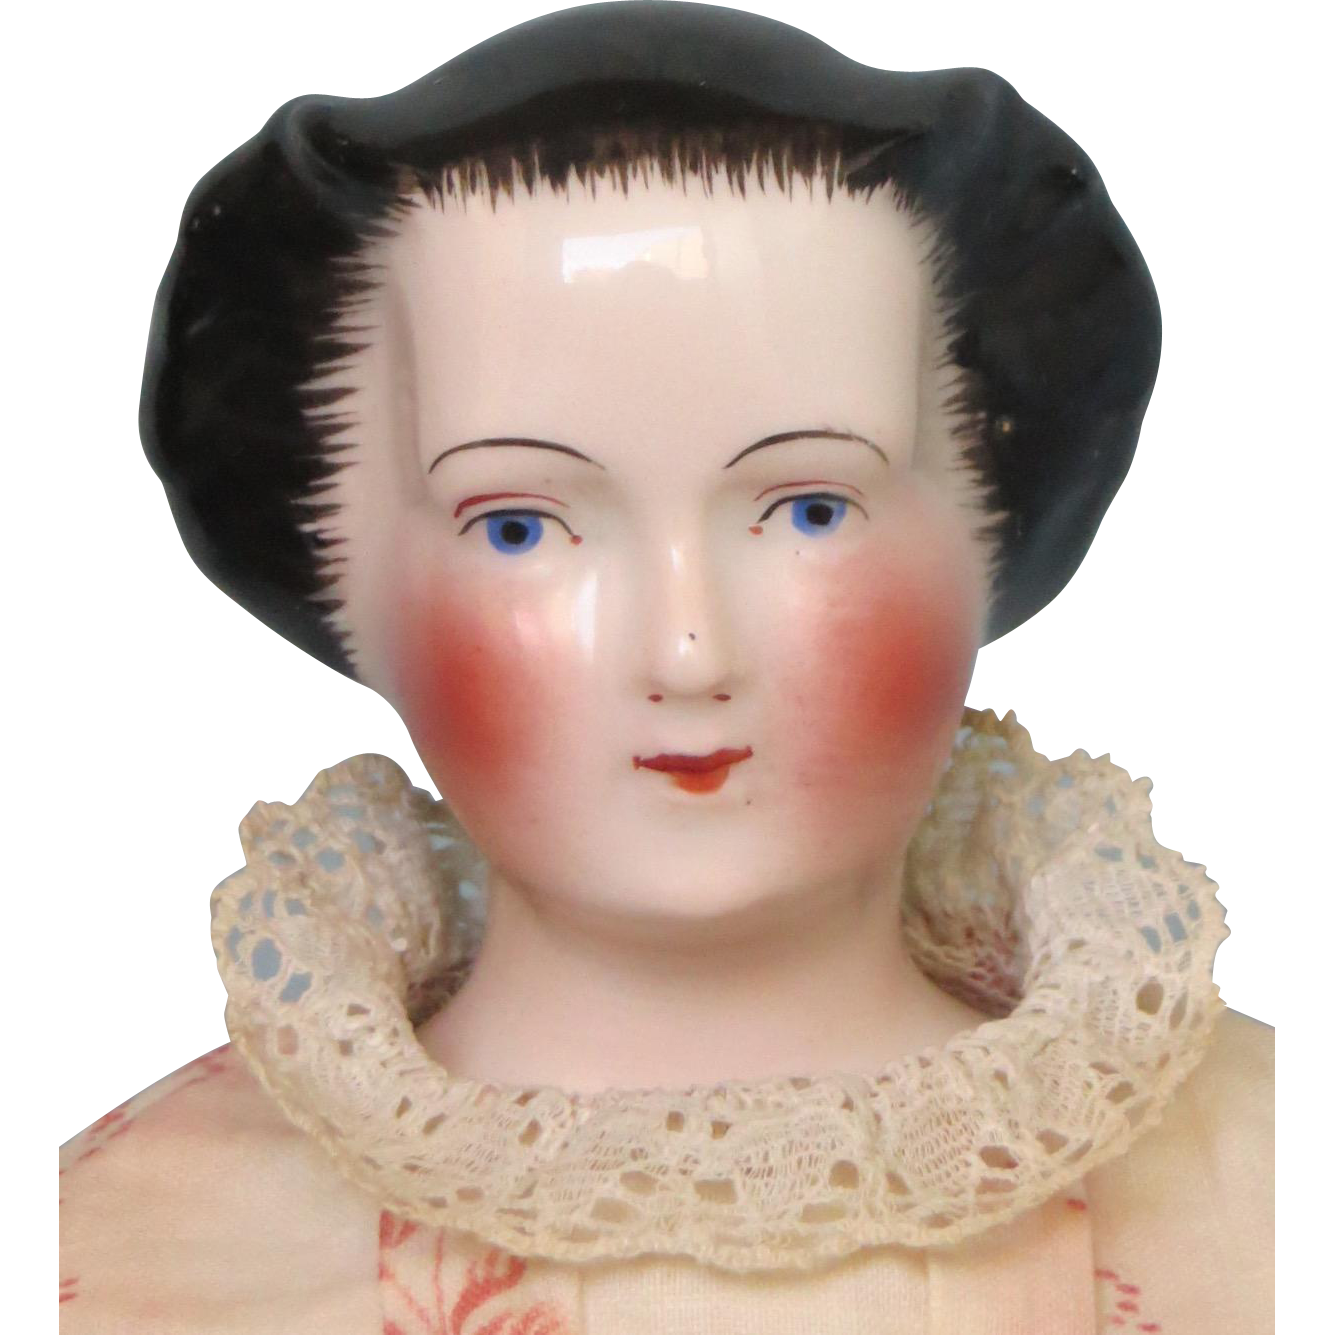 Antique Rare China Doll With Fancy And Unusual Waterfall Hairstyle China Dolls China Head Doll Dolls